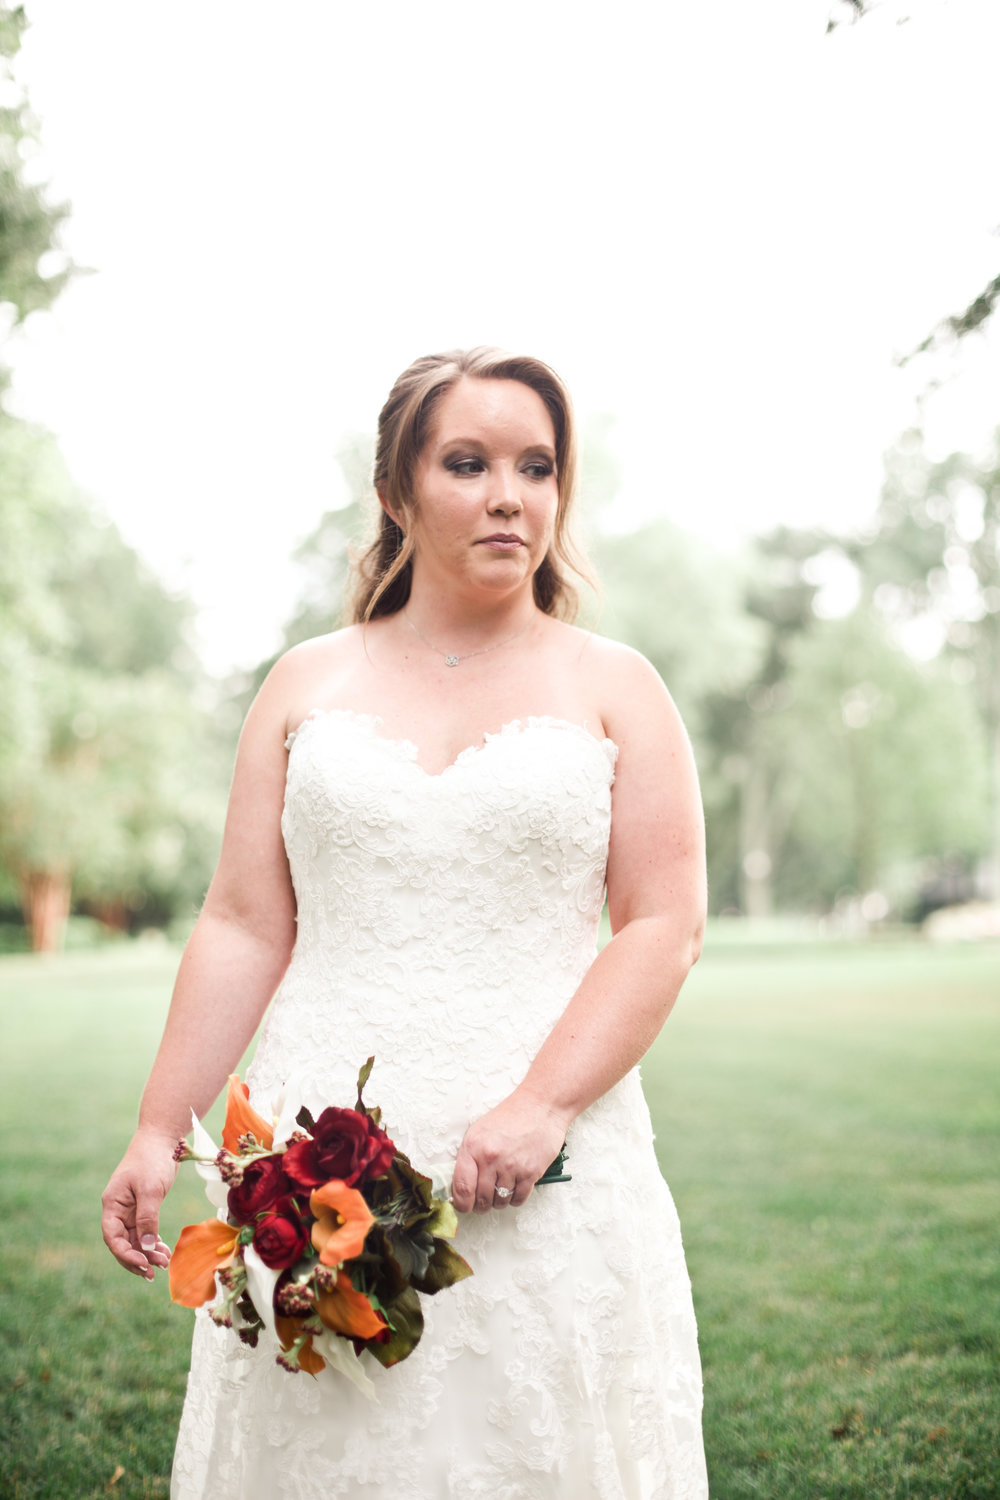 gabbie_bridal_poured_out_photography-32.jpg